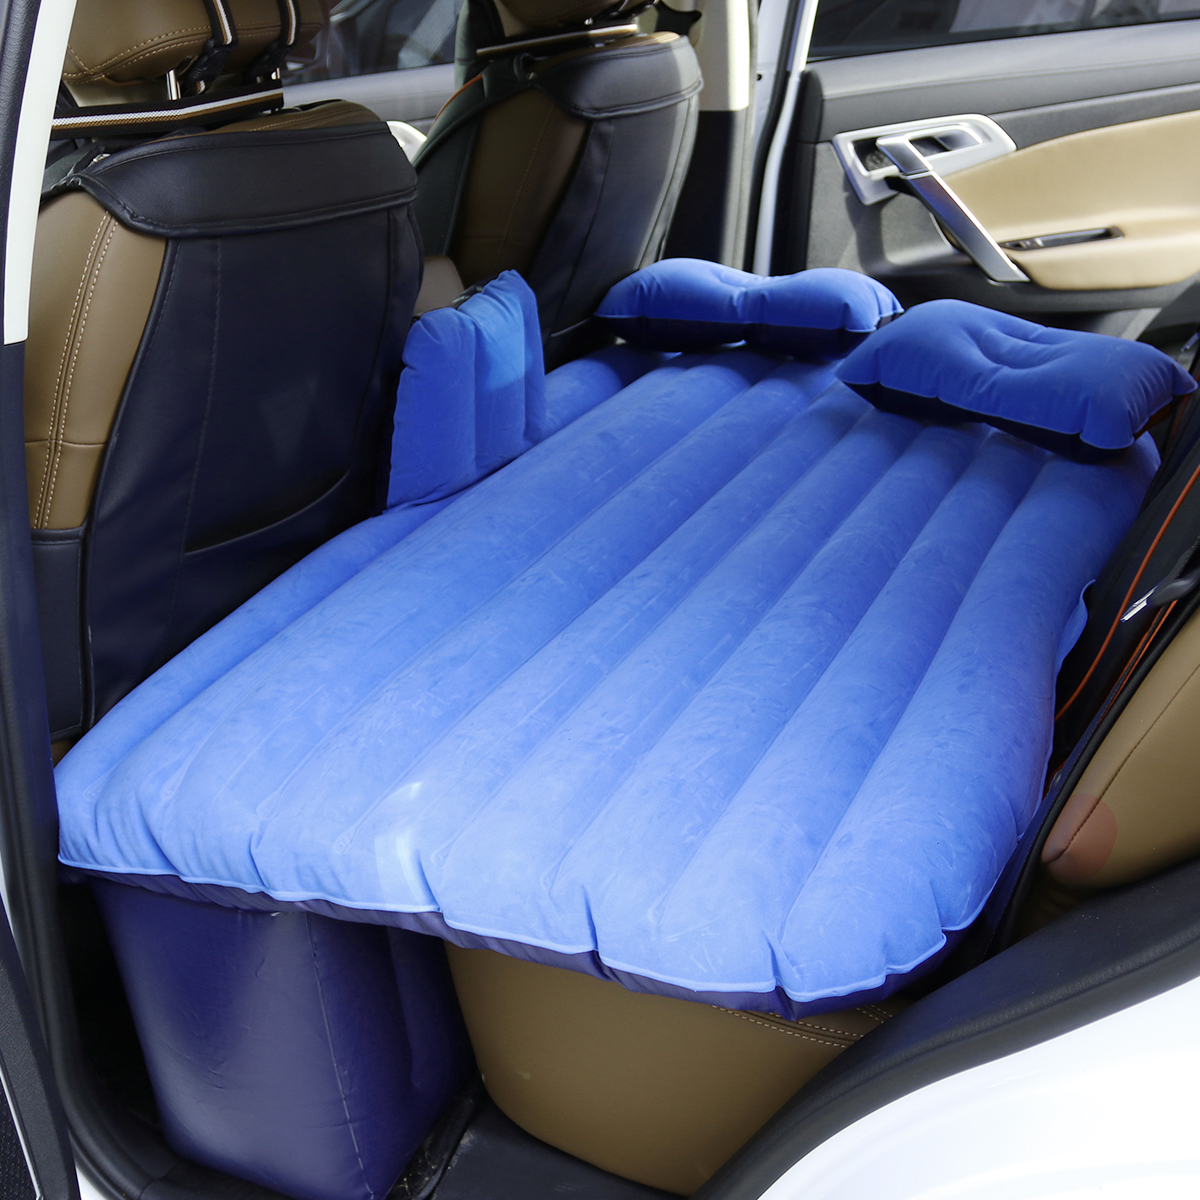 Universal Travel Car Bed Inflatable Mattress Air Inflatable Bed Camping Back Seat Extended Mattress +Two Pillows Car For Couple durable thicken pvc car travel inflatable bed automotive air mattress camping mat with air pump